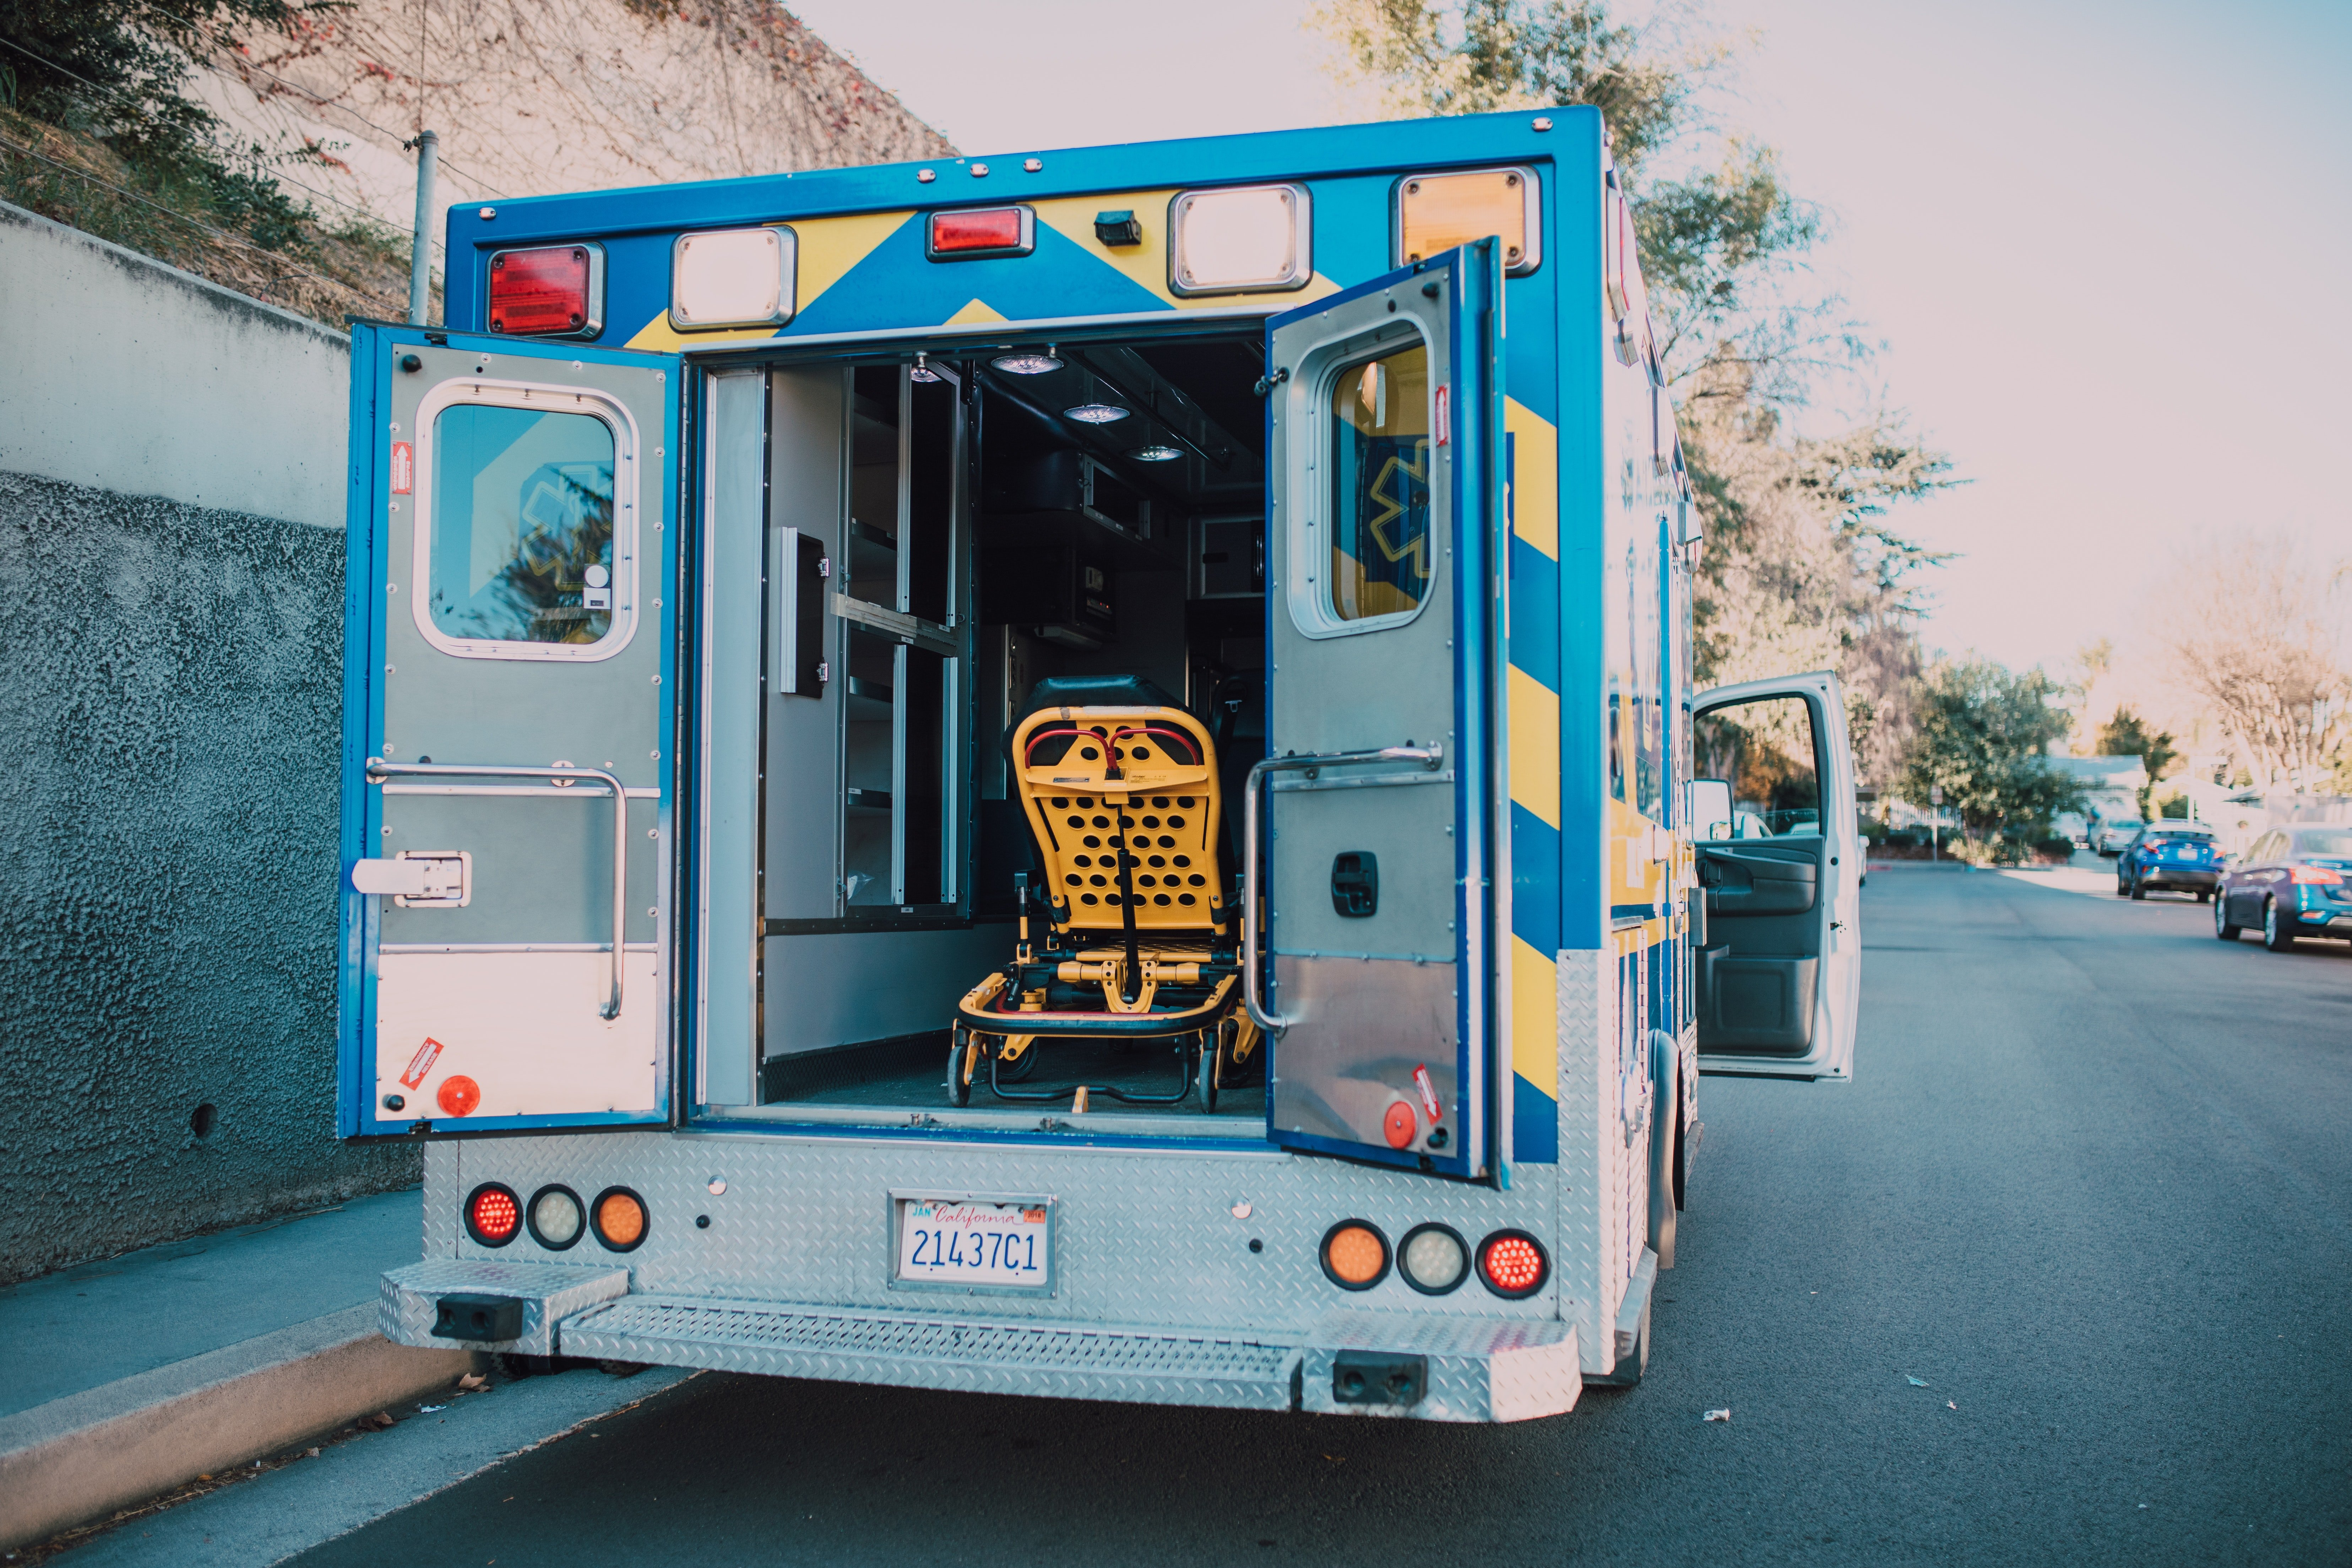 The back of an ambulance is open and ready for its next patient | Photo: Pexels/RODNAE Productions